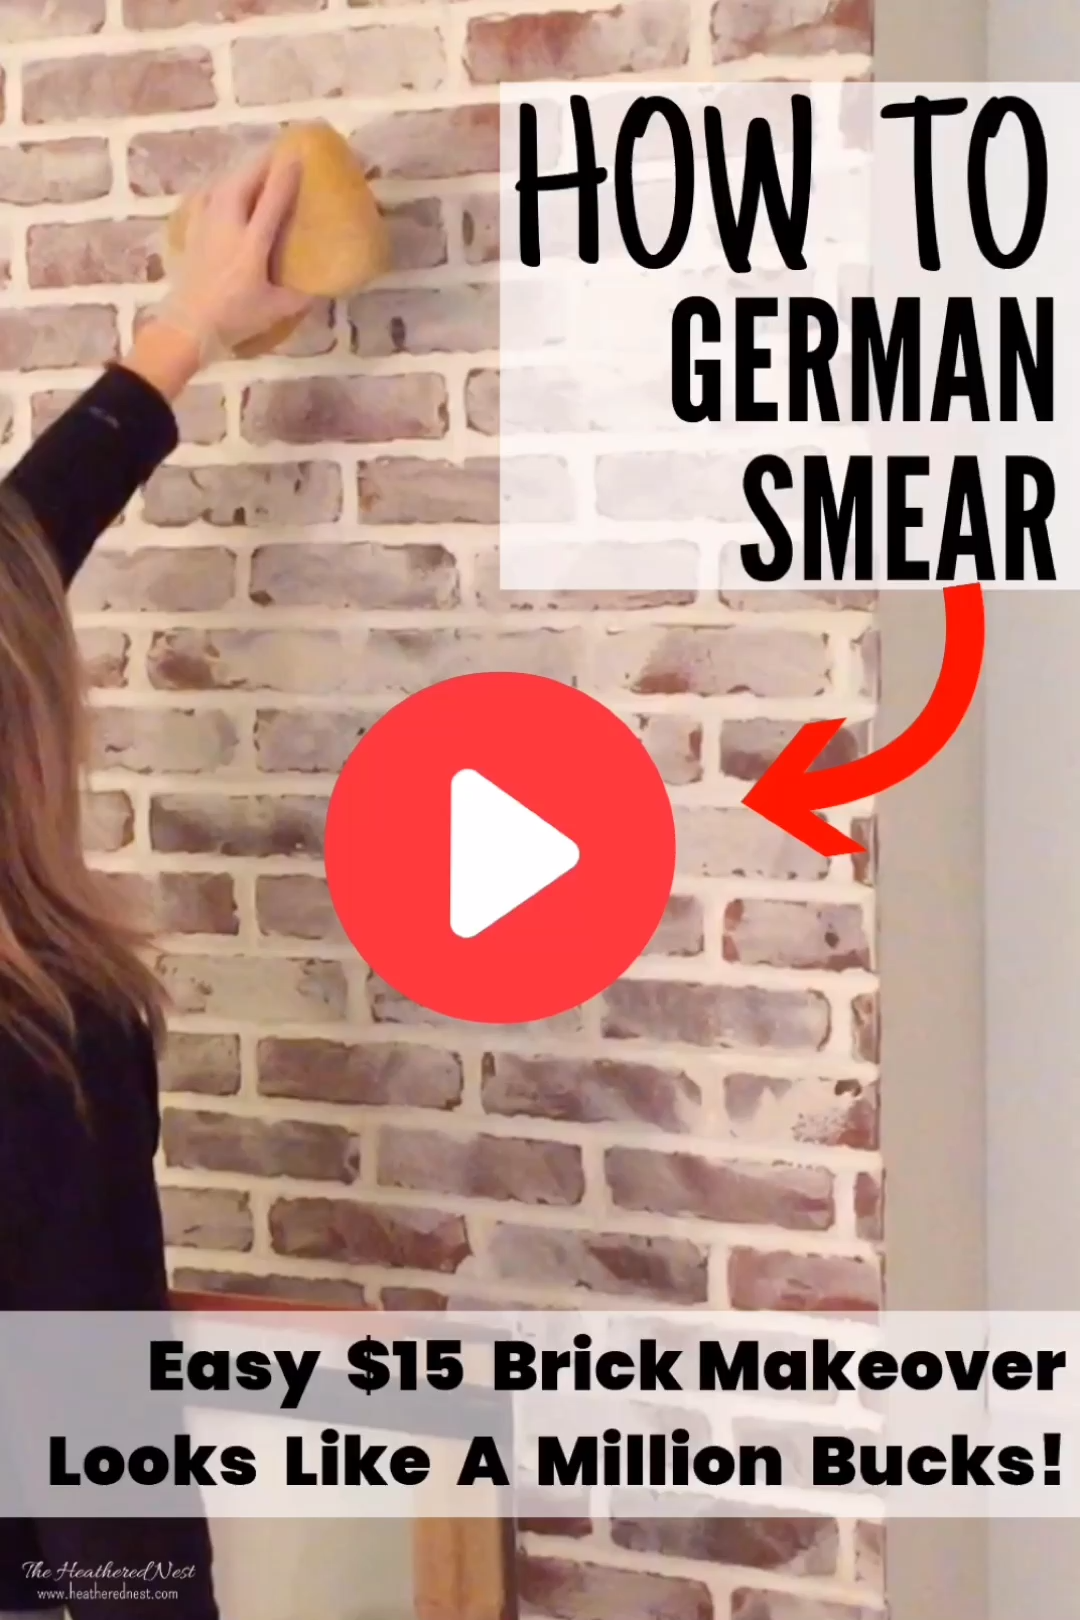 Maybe You've Seen it on Fixer Upper. Or just noticed this gorgeous brick treatment somewhere else. Guess what? It's not hard OR expensive to DIY! Here's how to tackle a DIY mortar wash, or German Smear to update your brick! #MortarWash #HowToGermanSmear #BrickMakeover #GermanSmear #BrickUpdate #HowToGermanSchmear #FixerUpperBrick #GermanSmearFireplace #GermanSmearBrickDIY #GermanSchmearBrickDIY #MortarWashedBrick #MortarWashedBrickFireplace #brickideas #brickideasDIY#GermanSchmear